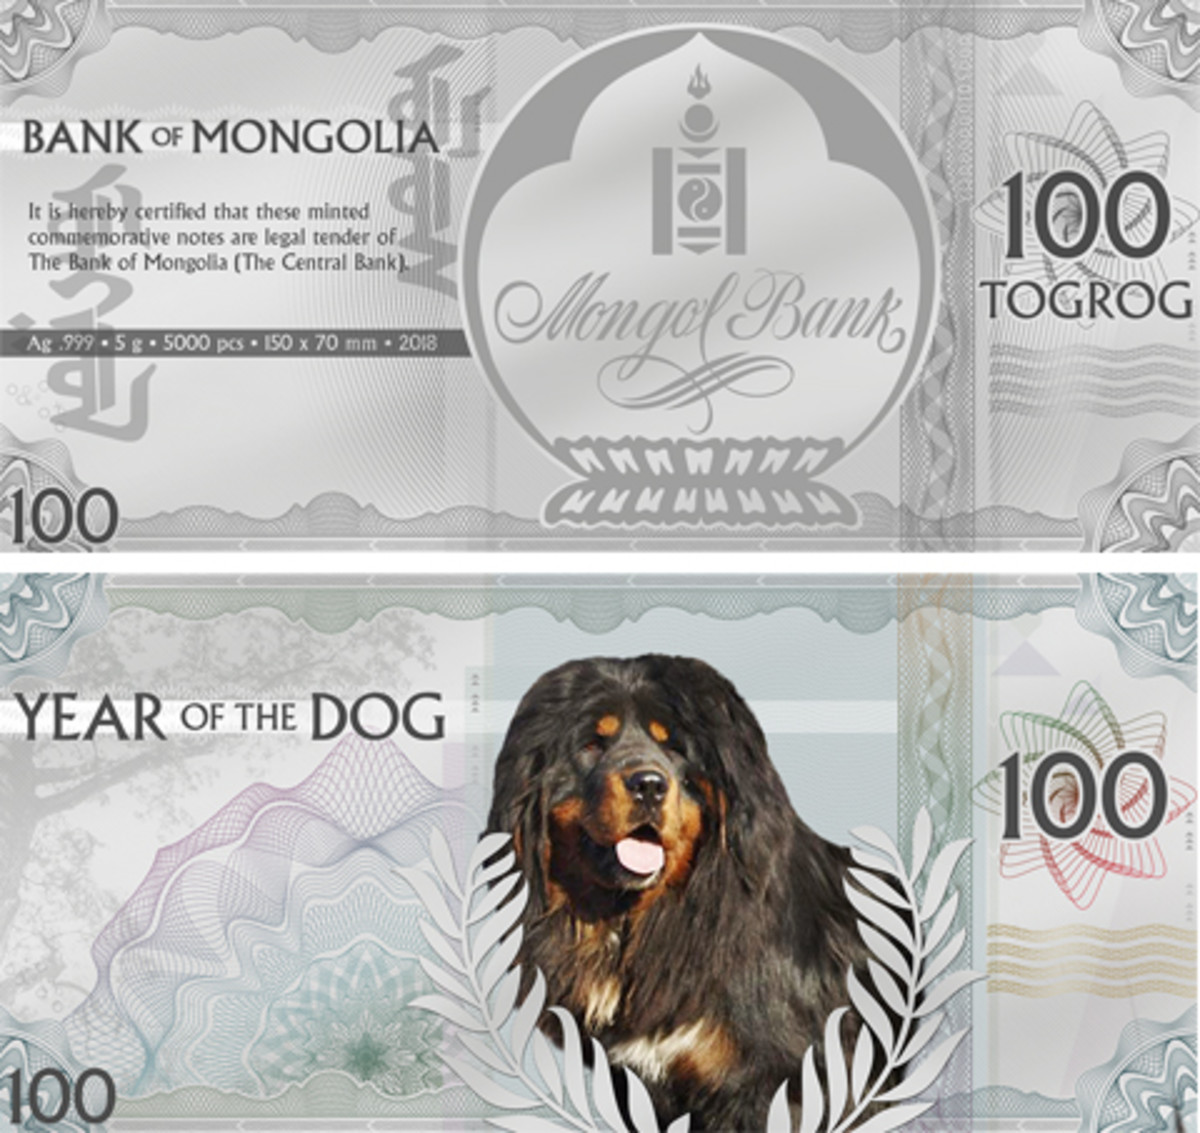 Mongolia's new 100 togrog note printed on silver foil that celebrates the Year of the Dog. (Images courtesy Coin Invest Trust)